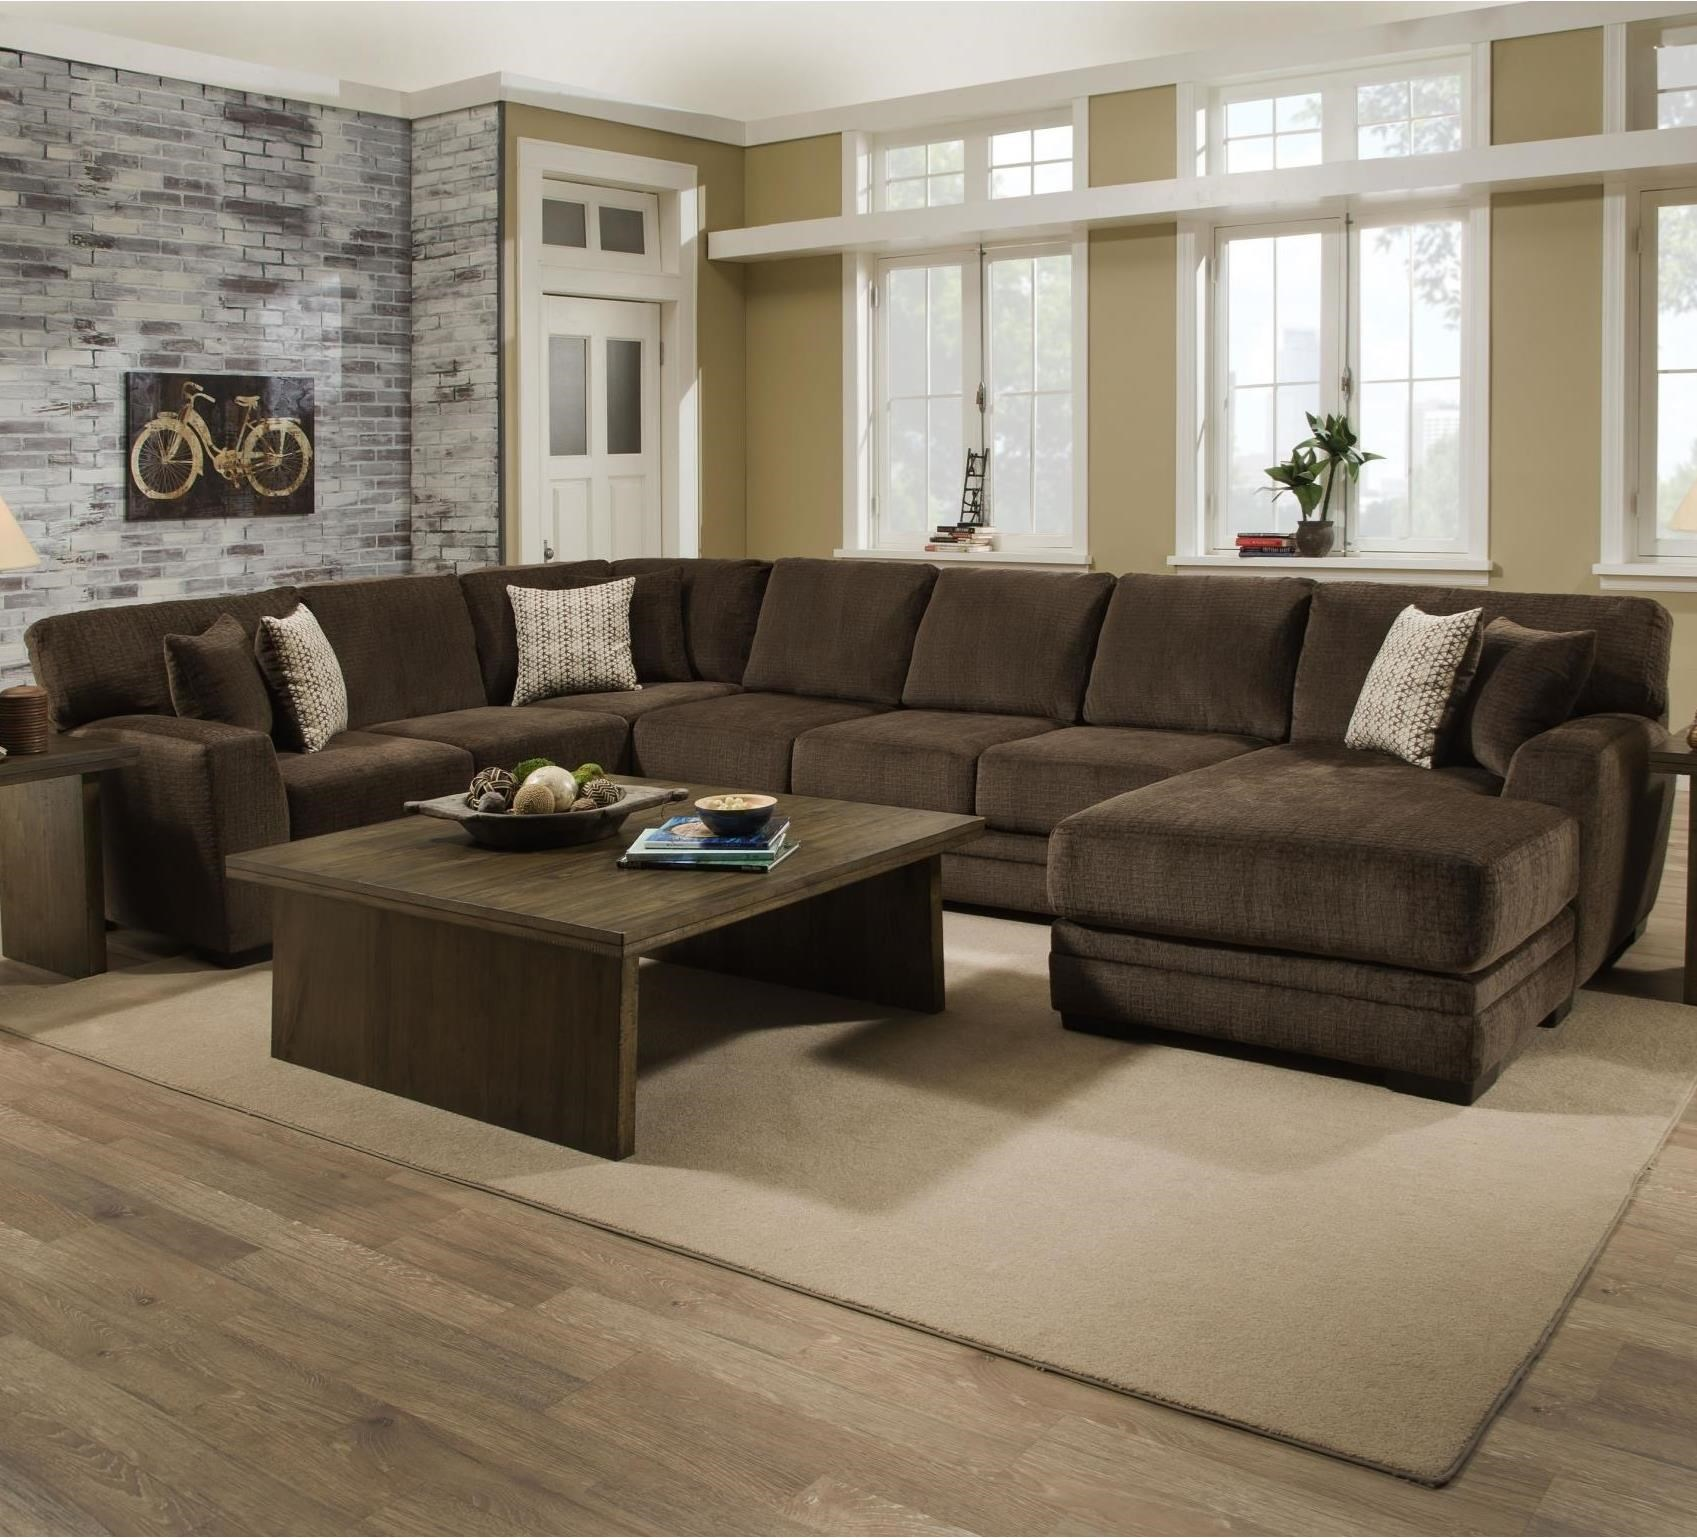 Prime Albany 968 968 3Pc Gens 22518 3 Pc Sectional With Raf Chaise Ibusinesslaw Wood Chair Design Ideas Ibusinesslaworg